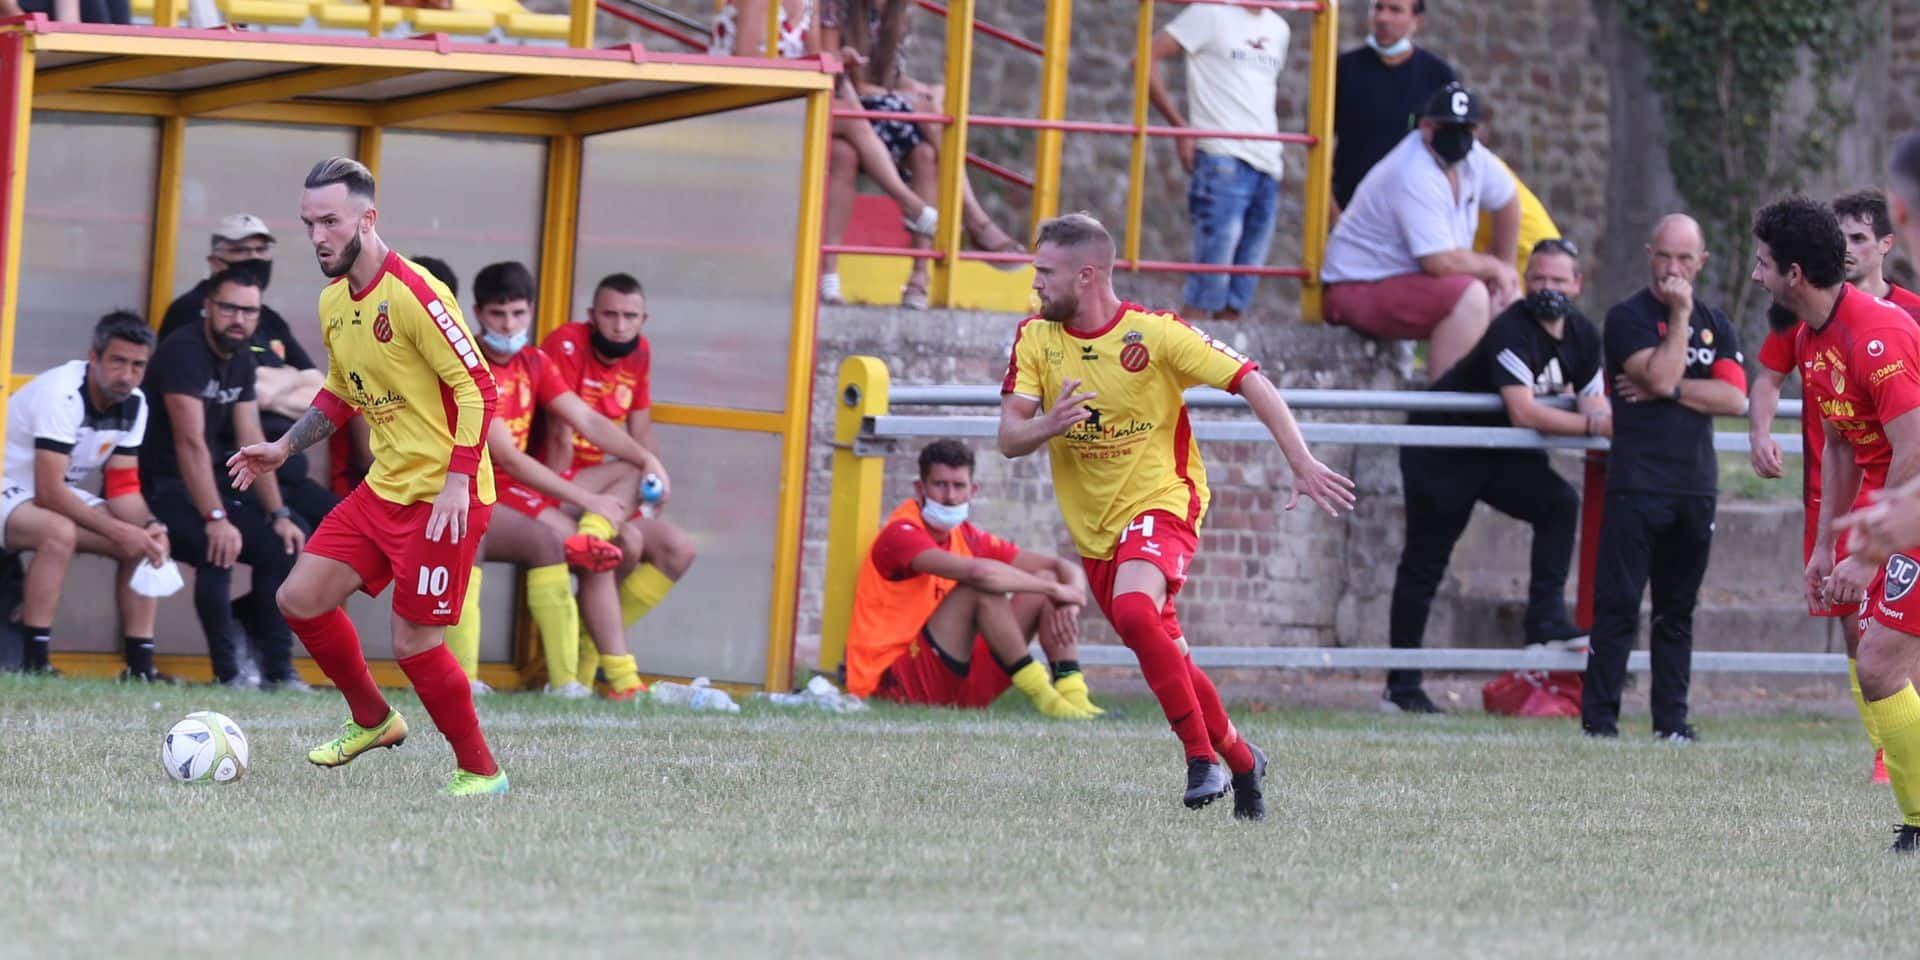 Beloeil domine le RFC Tournai (2-0) en amical